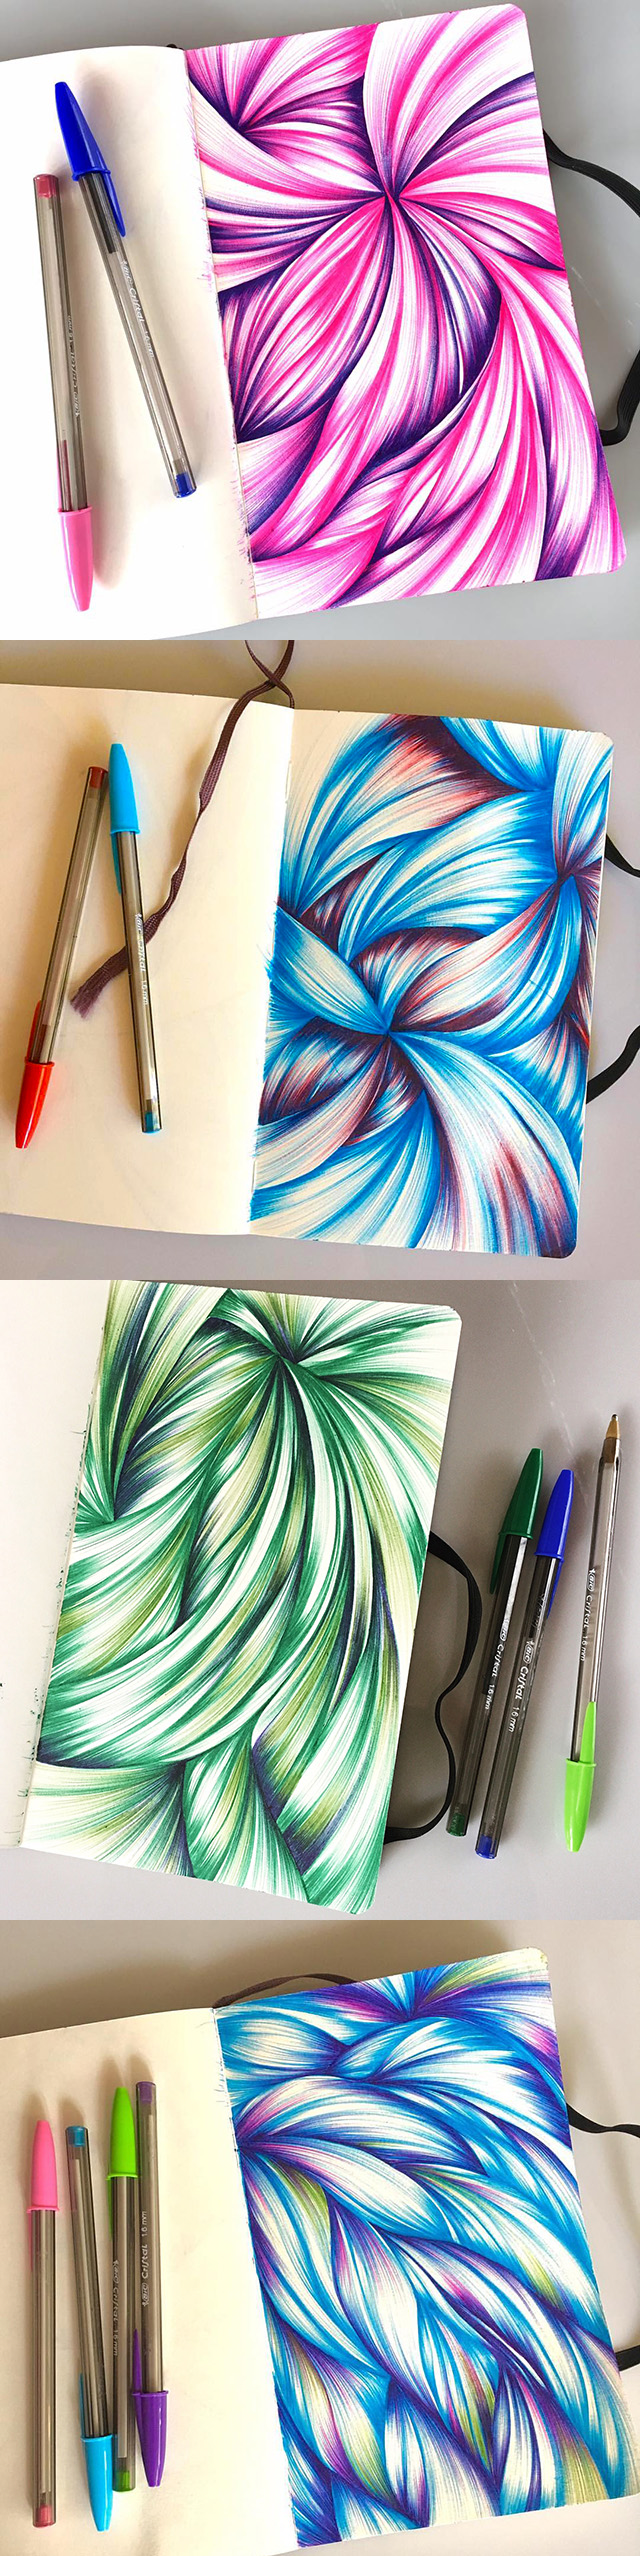 Multi-color ballpoint sketchbook drawings from 2016